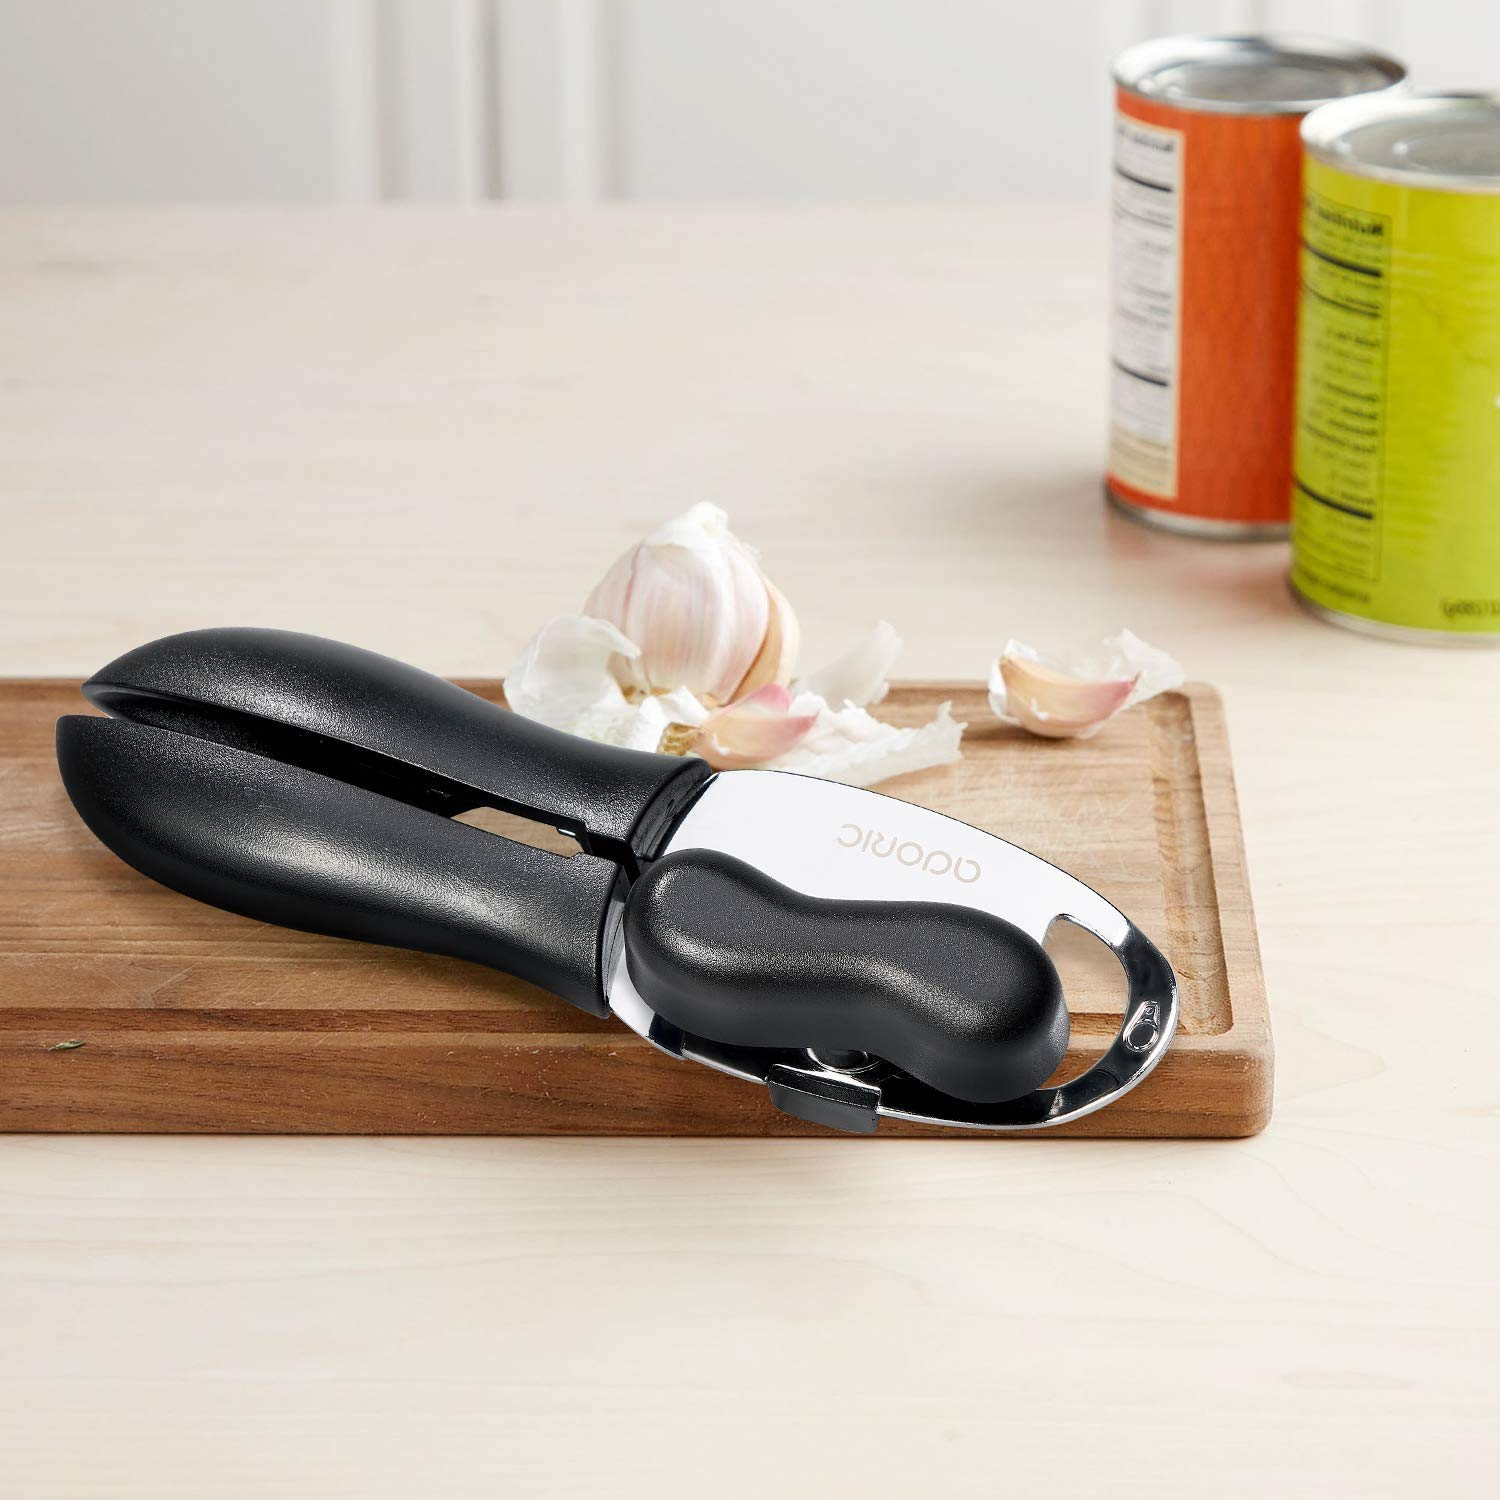 Food-Safe Stainless Steel 4-in-1 Manual Can Opener Manual Can Opener Stainless Steel Bottle Opener 3 Spare Blades Included Great for Seniors with Arthritis Black